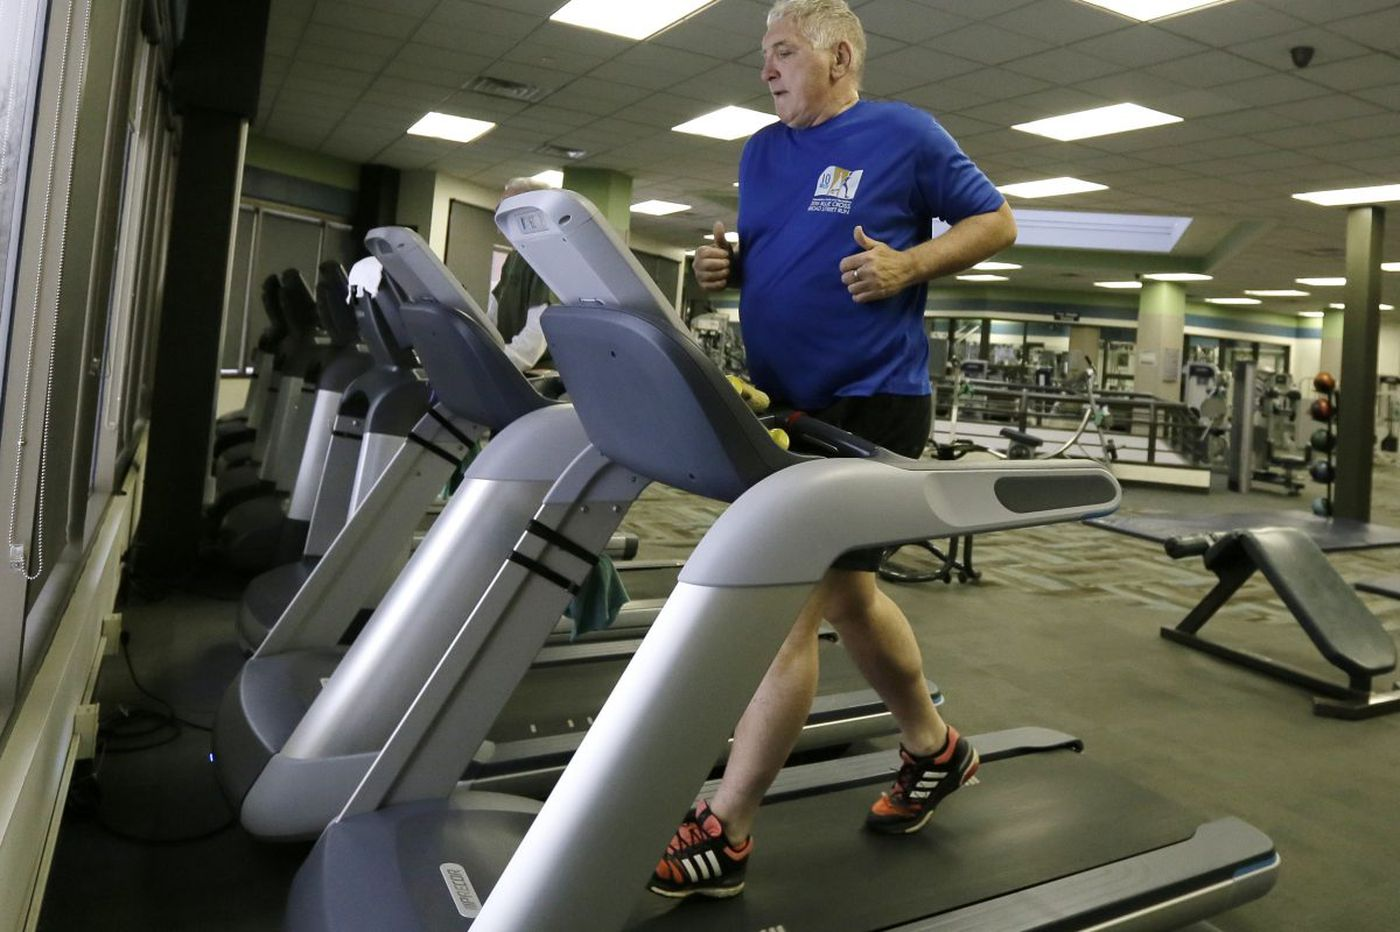 Rehab after heart attack: How hospitals can make sure it happens